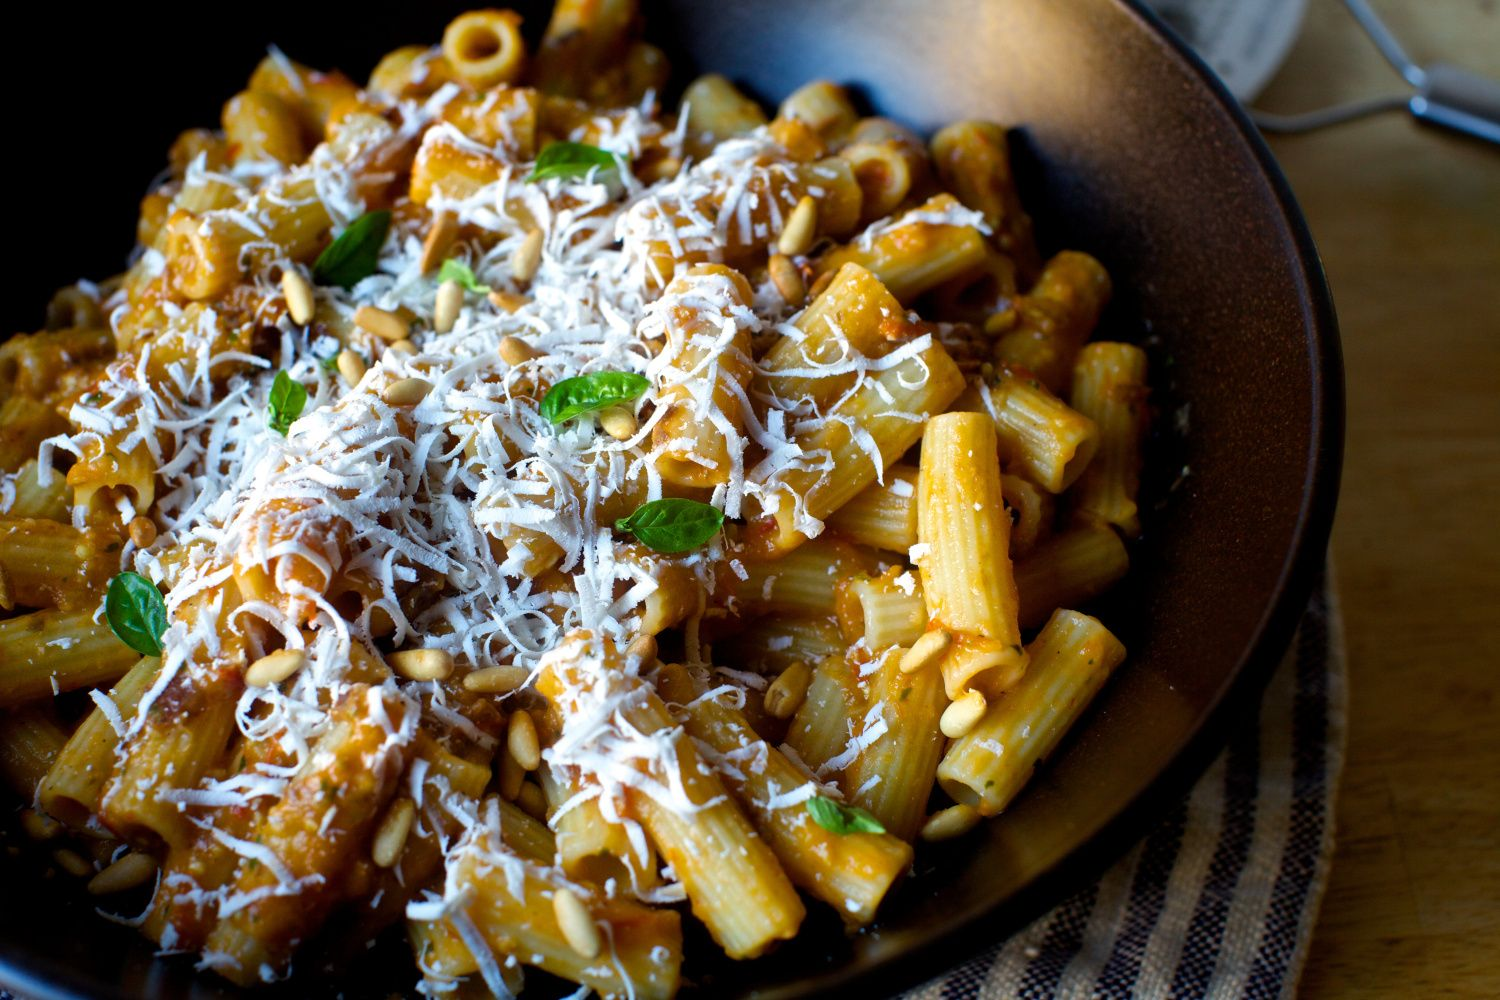 Smitten kitchen rigatoni with eggplant purée | food to make ...